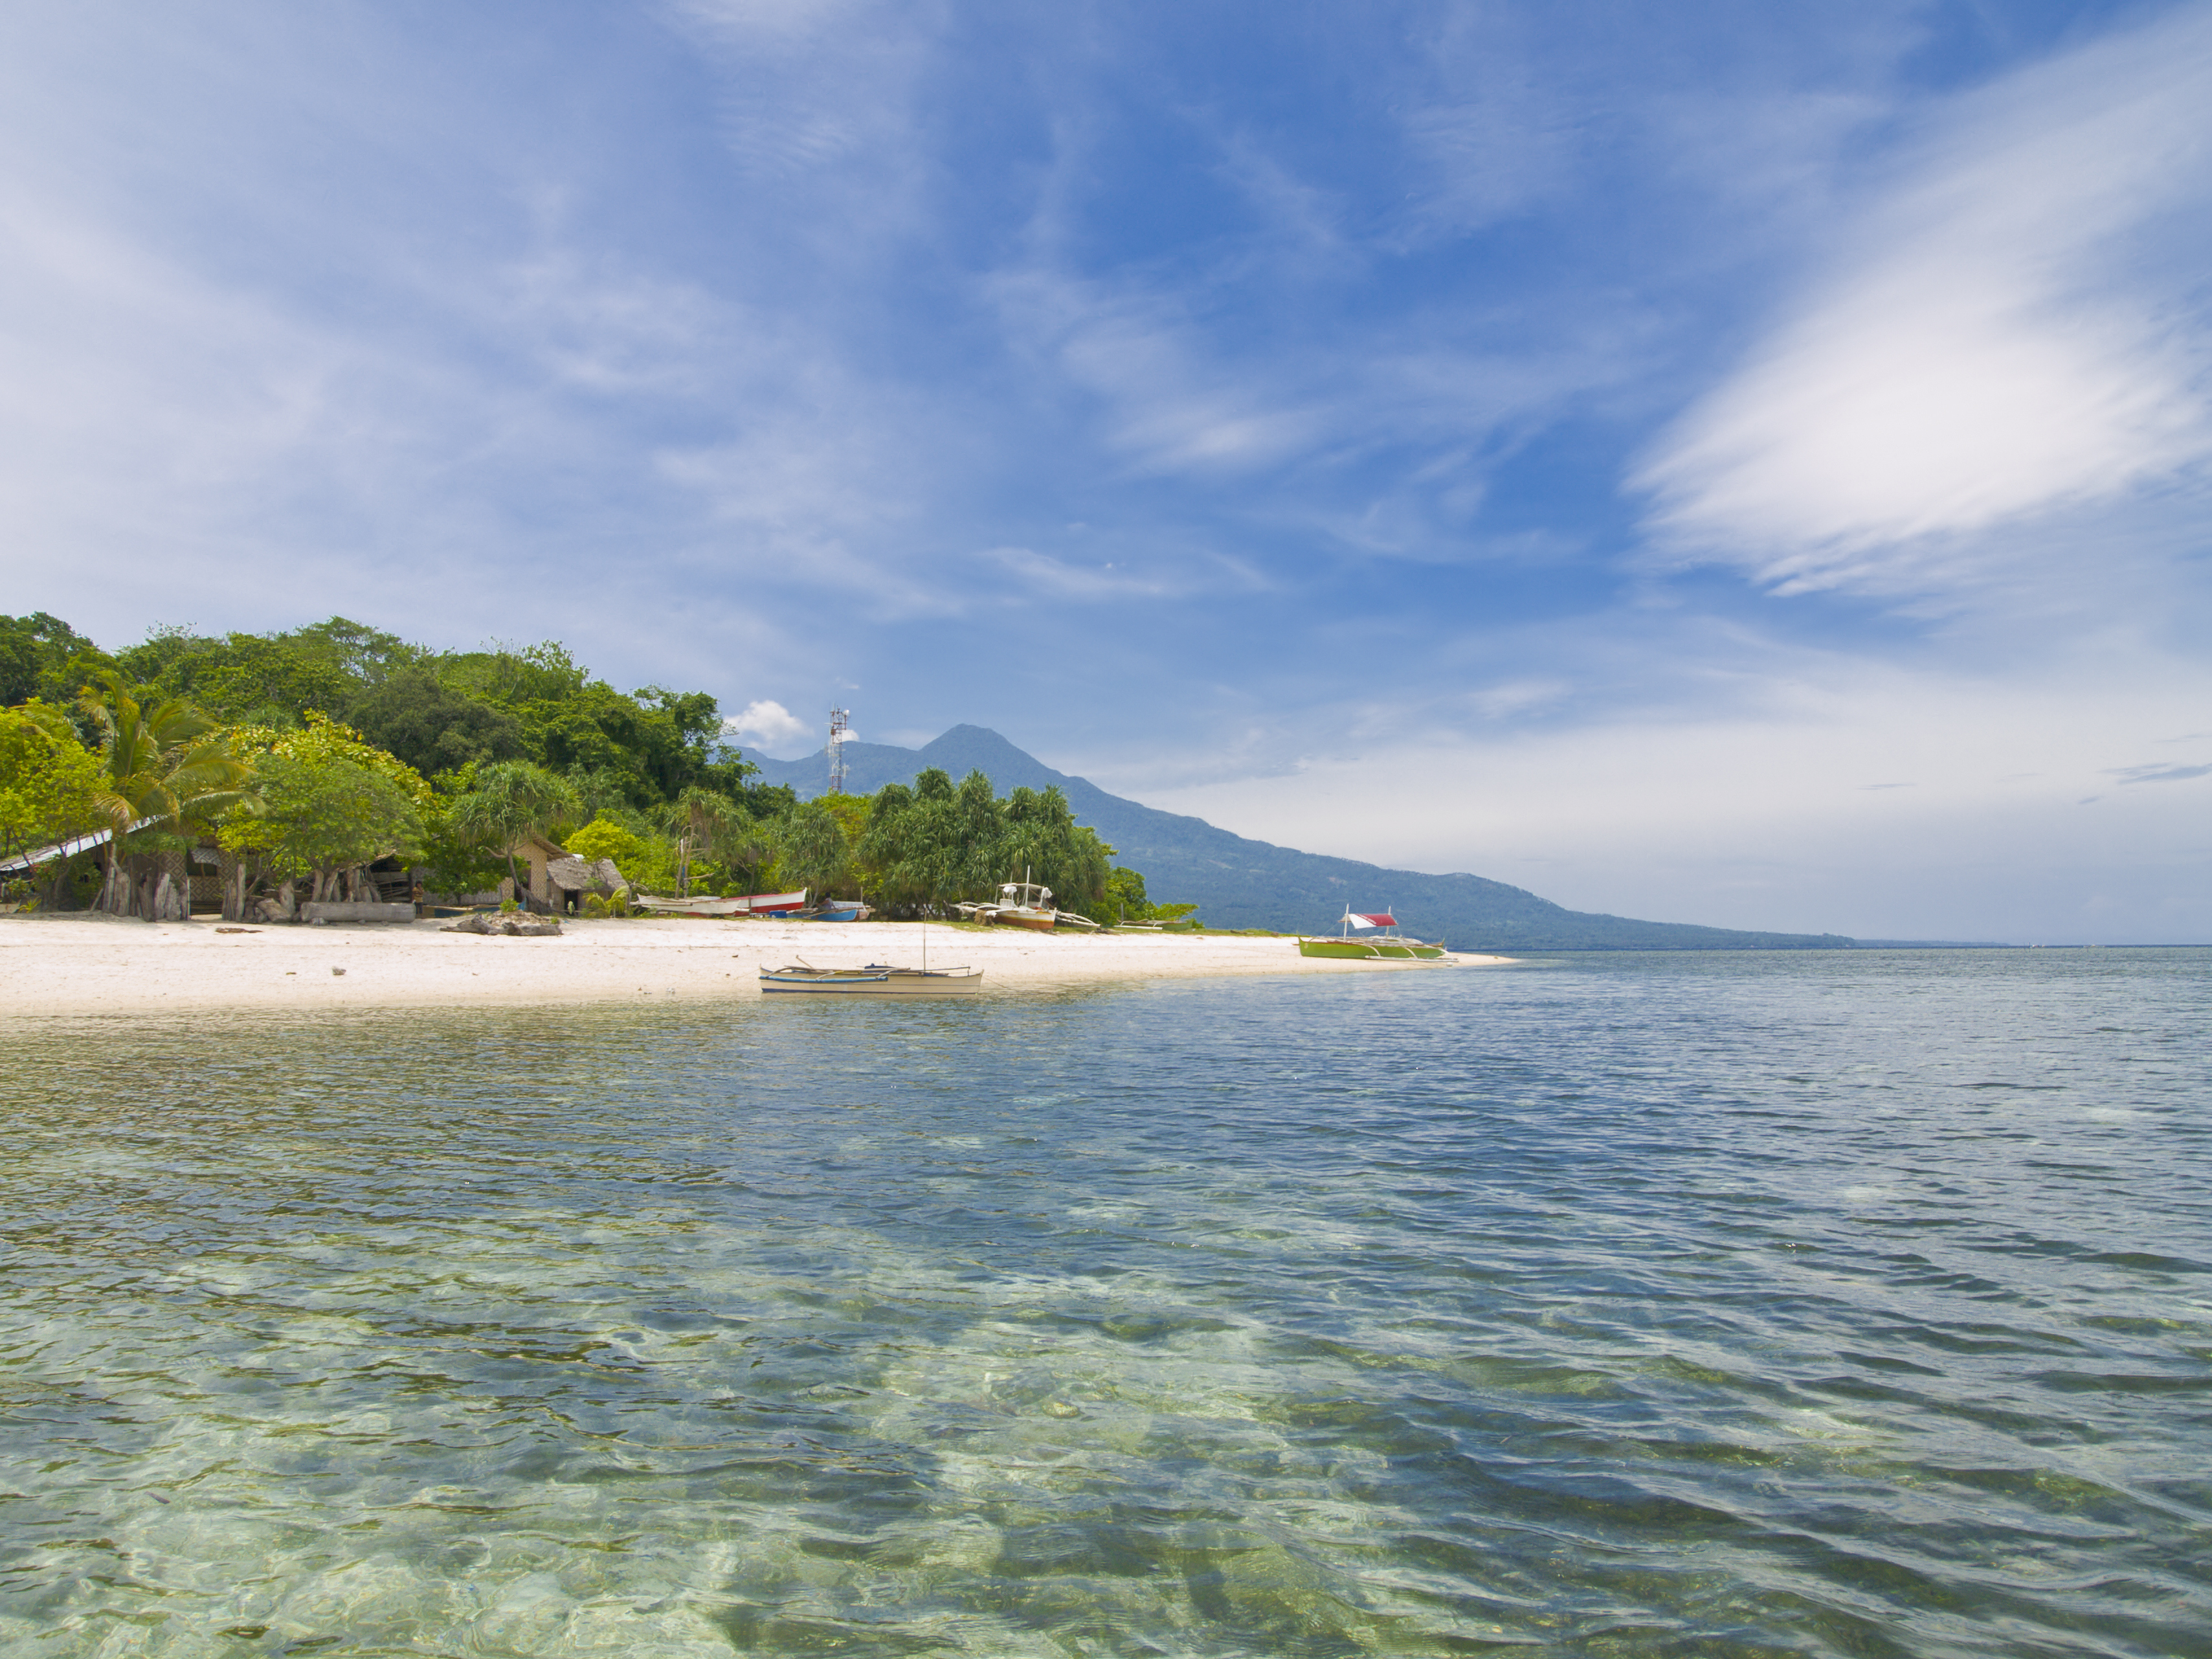 Mantigue Island is a paradise for divers in the Philippines